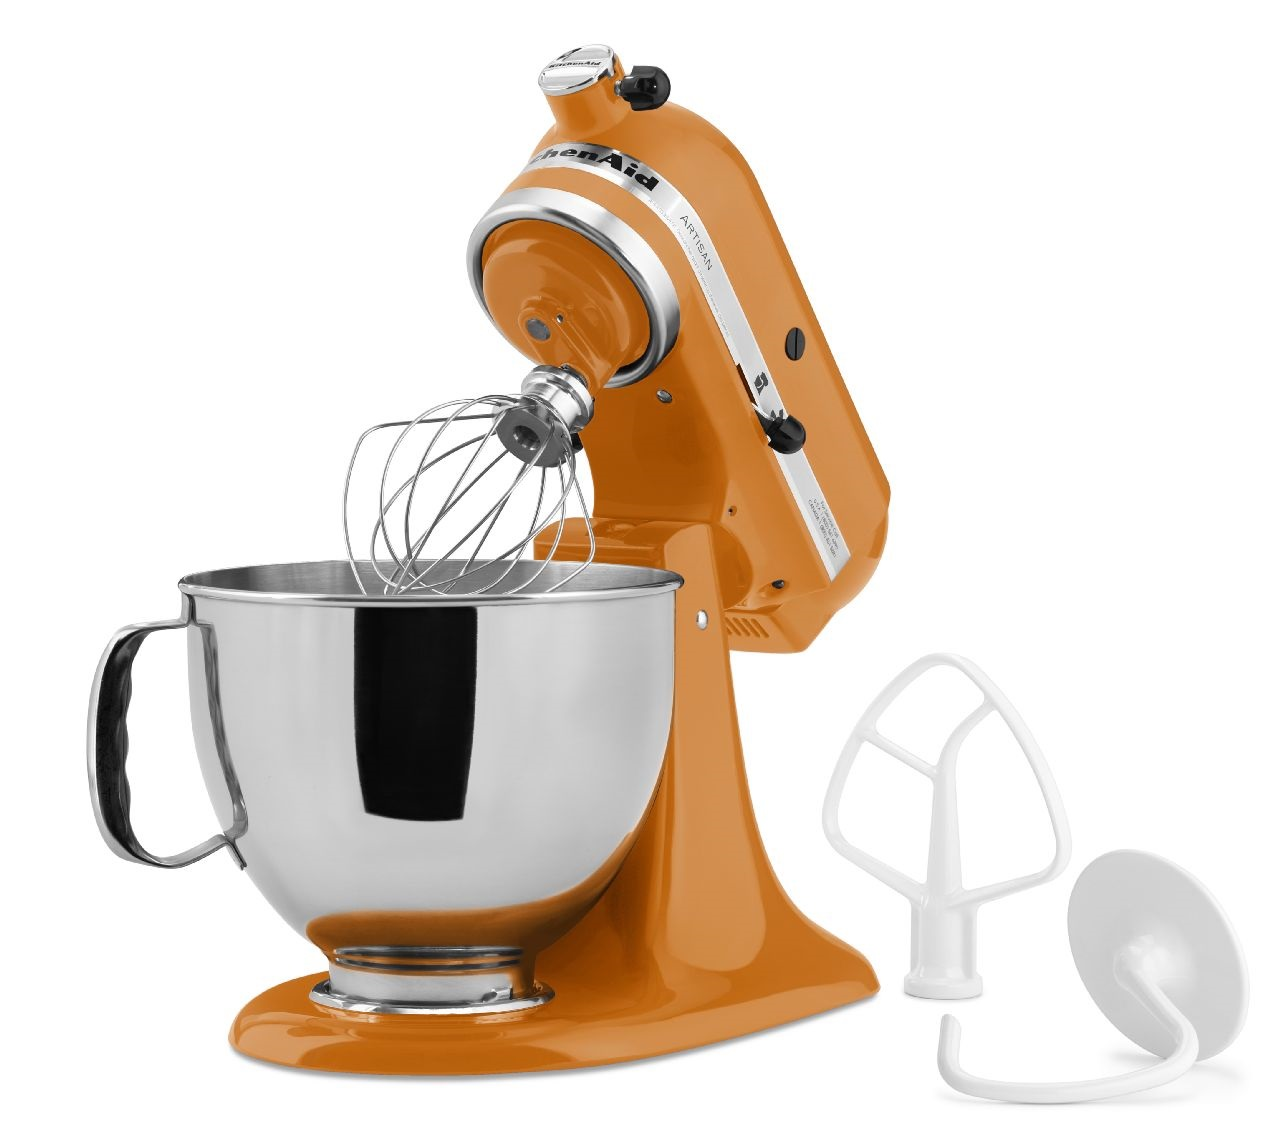 KitchenAid-Refurbished-Artisan-Series-5-Quart-Tilt-Head-Stand-Mixer-RRK150 thumbnail 77